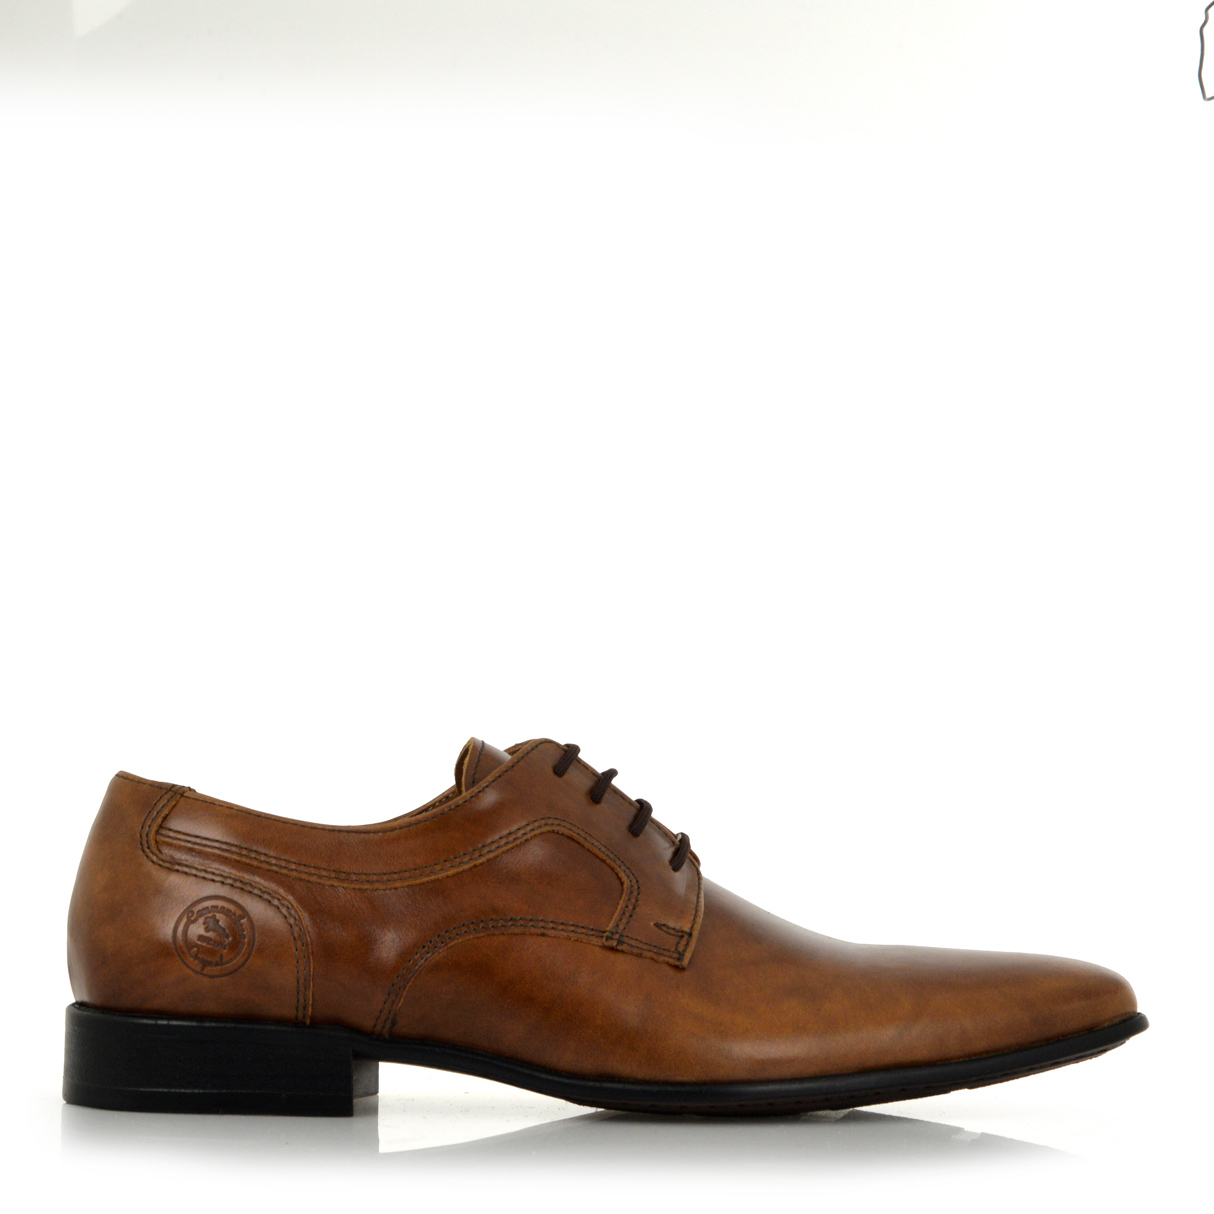 LACE-UP SHOES σχέδιο: F51856091 outlet   ανδρικα   lace up shoes